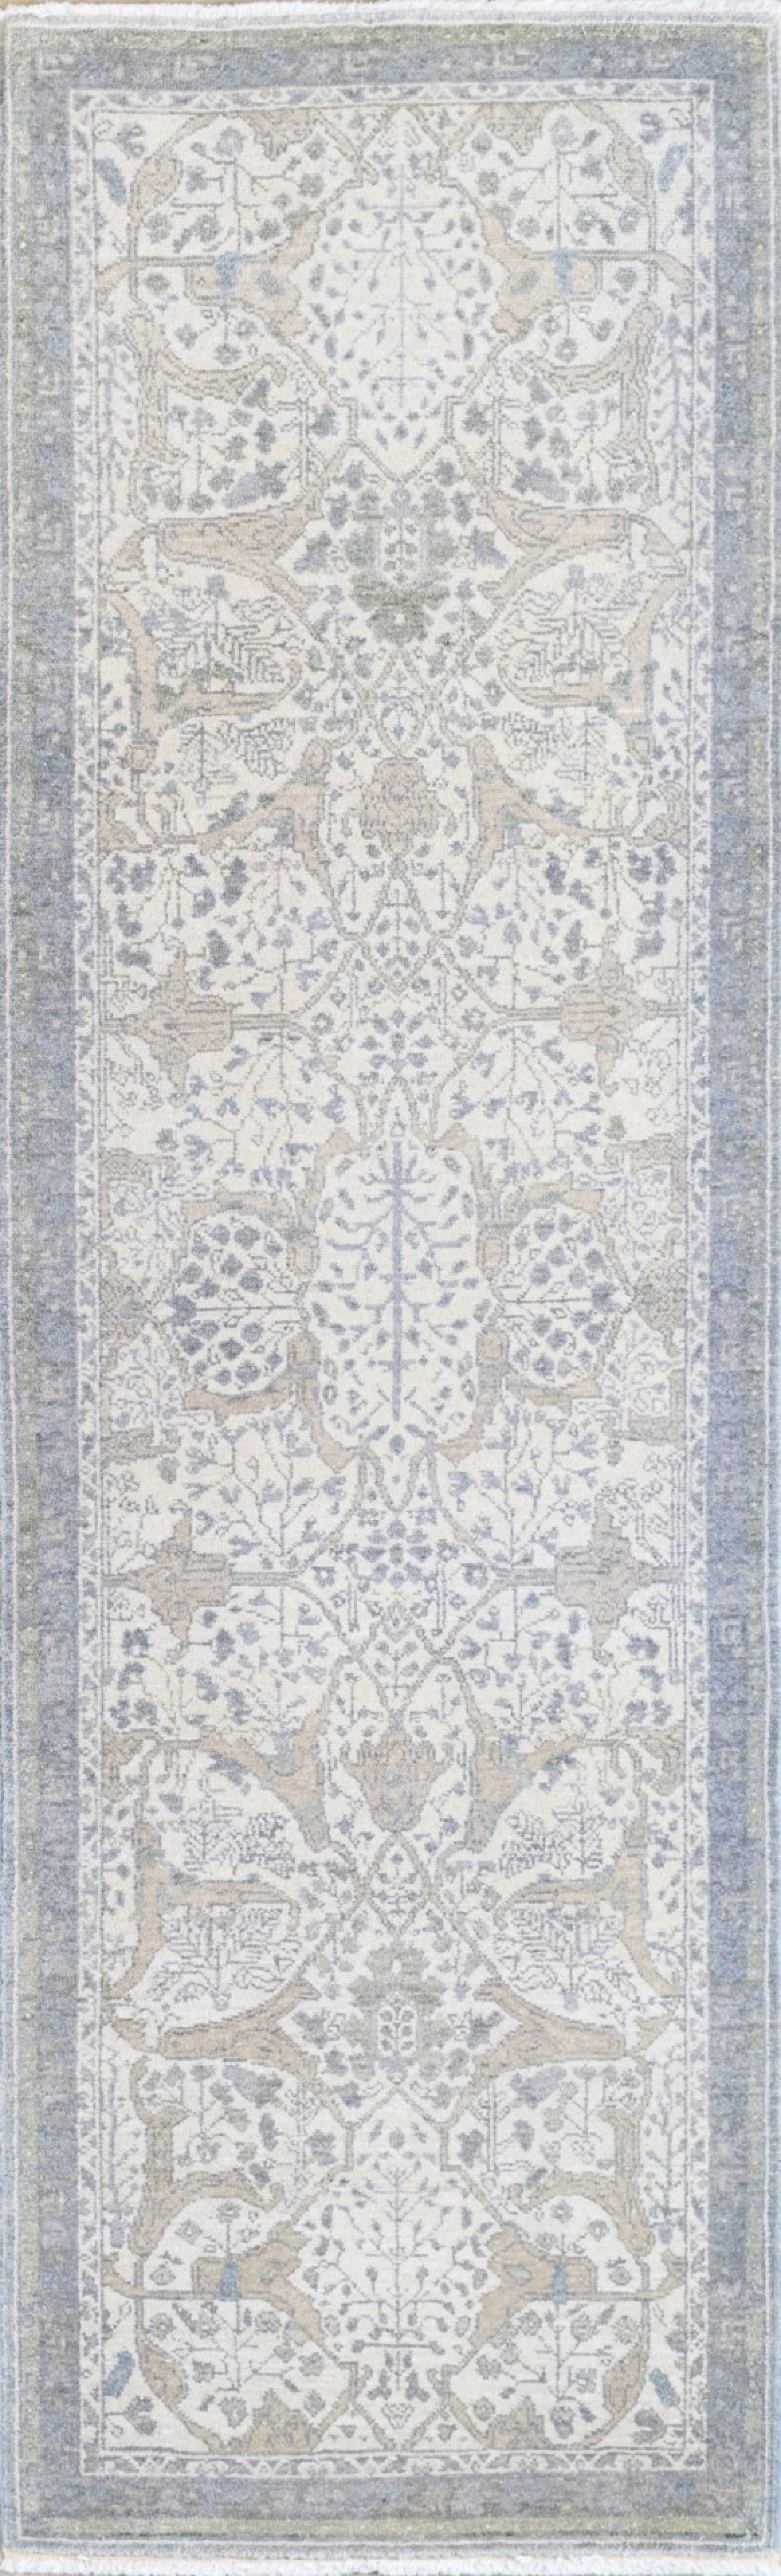 MAHABAD PARCHMENT RUNNER